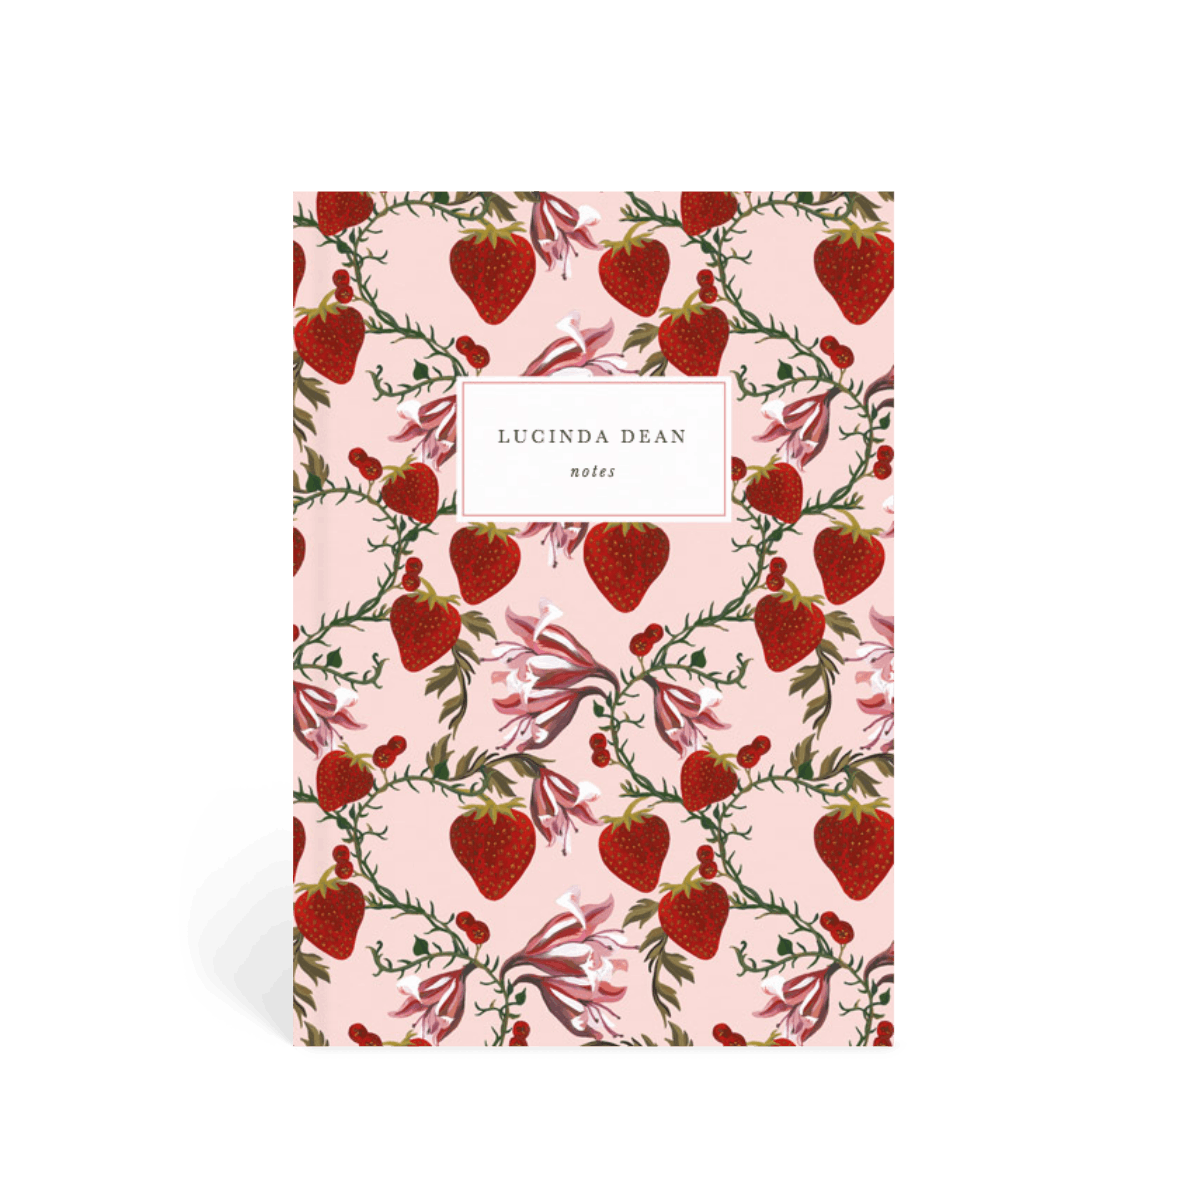 Https%3a%2f%2fwww.papier.com%2fproduct image%2f47156%2f25%2fstrawberry floral 11562 front 1539706784.png?ixlib=rb 1.1